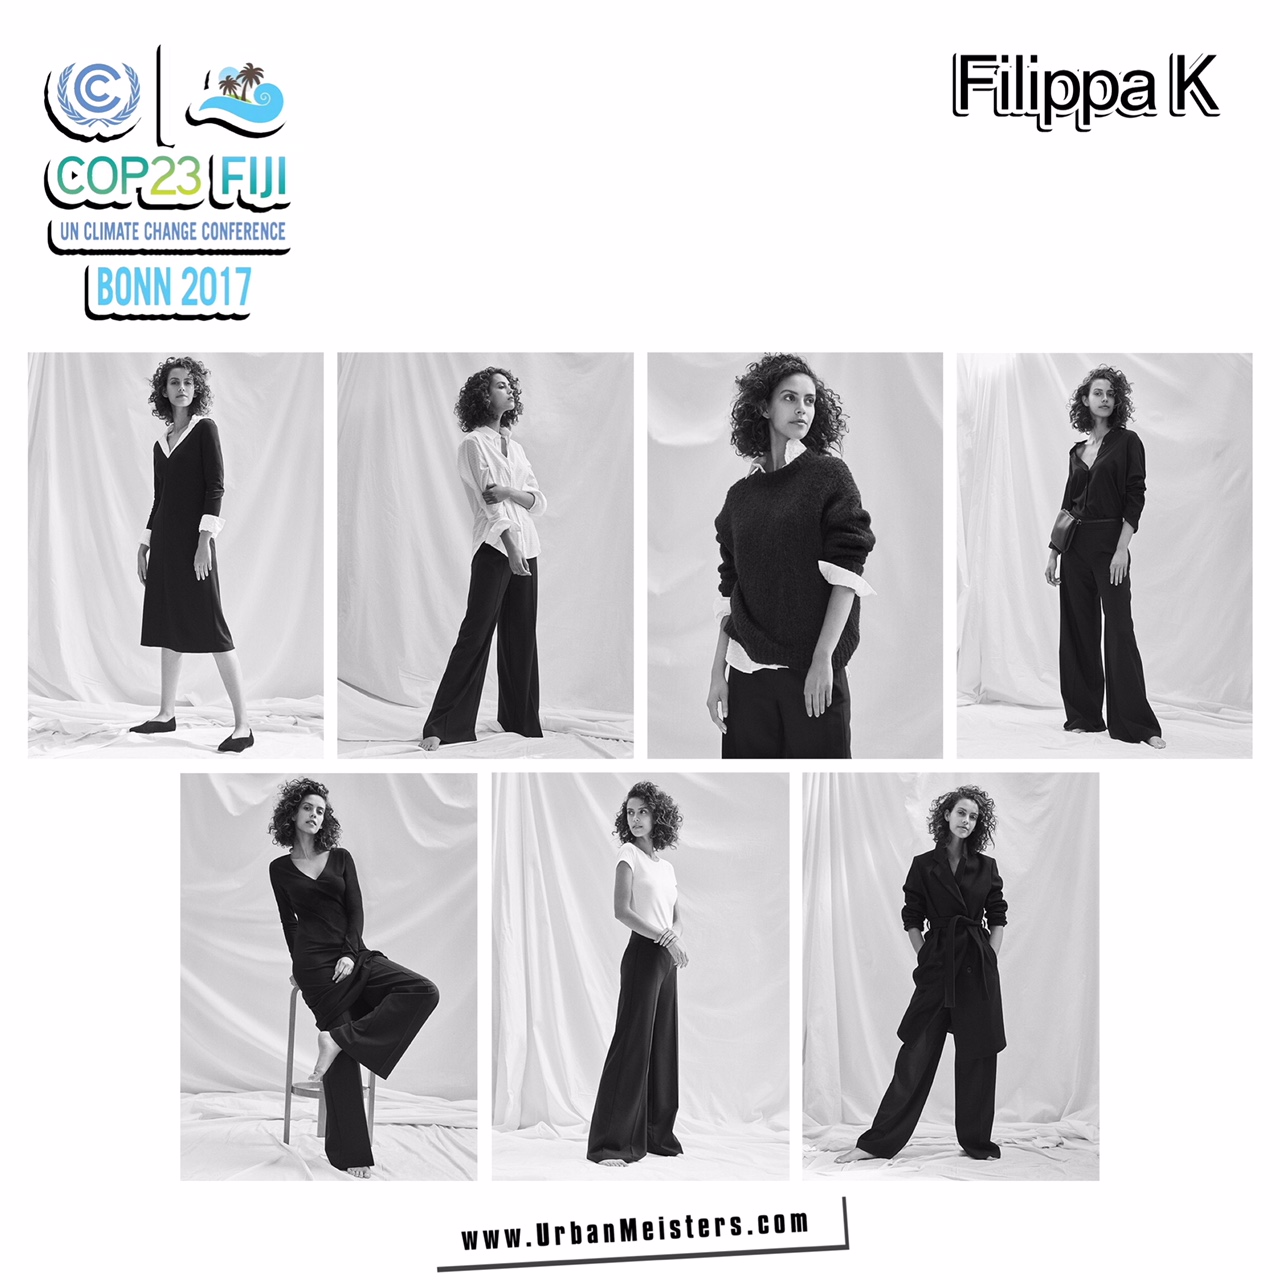 COP23 fashion FilippaK campaign